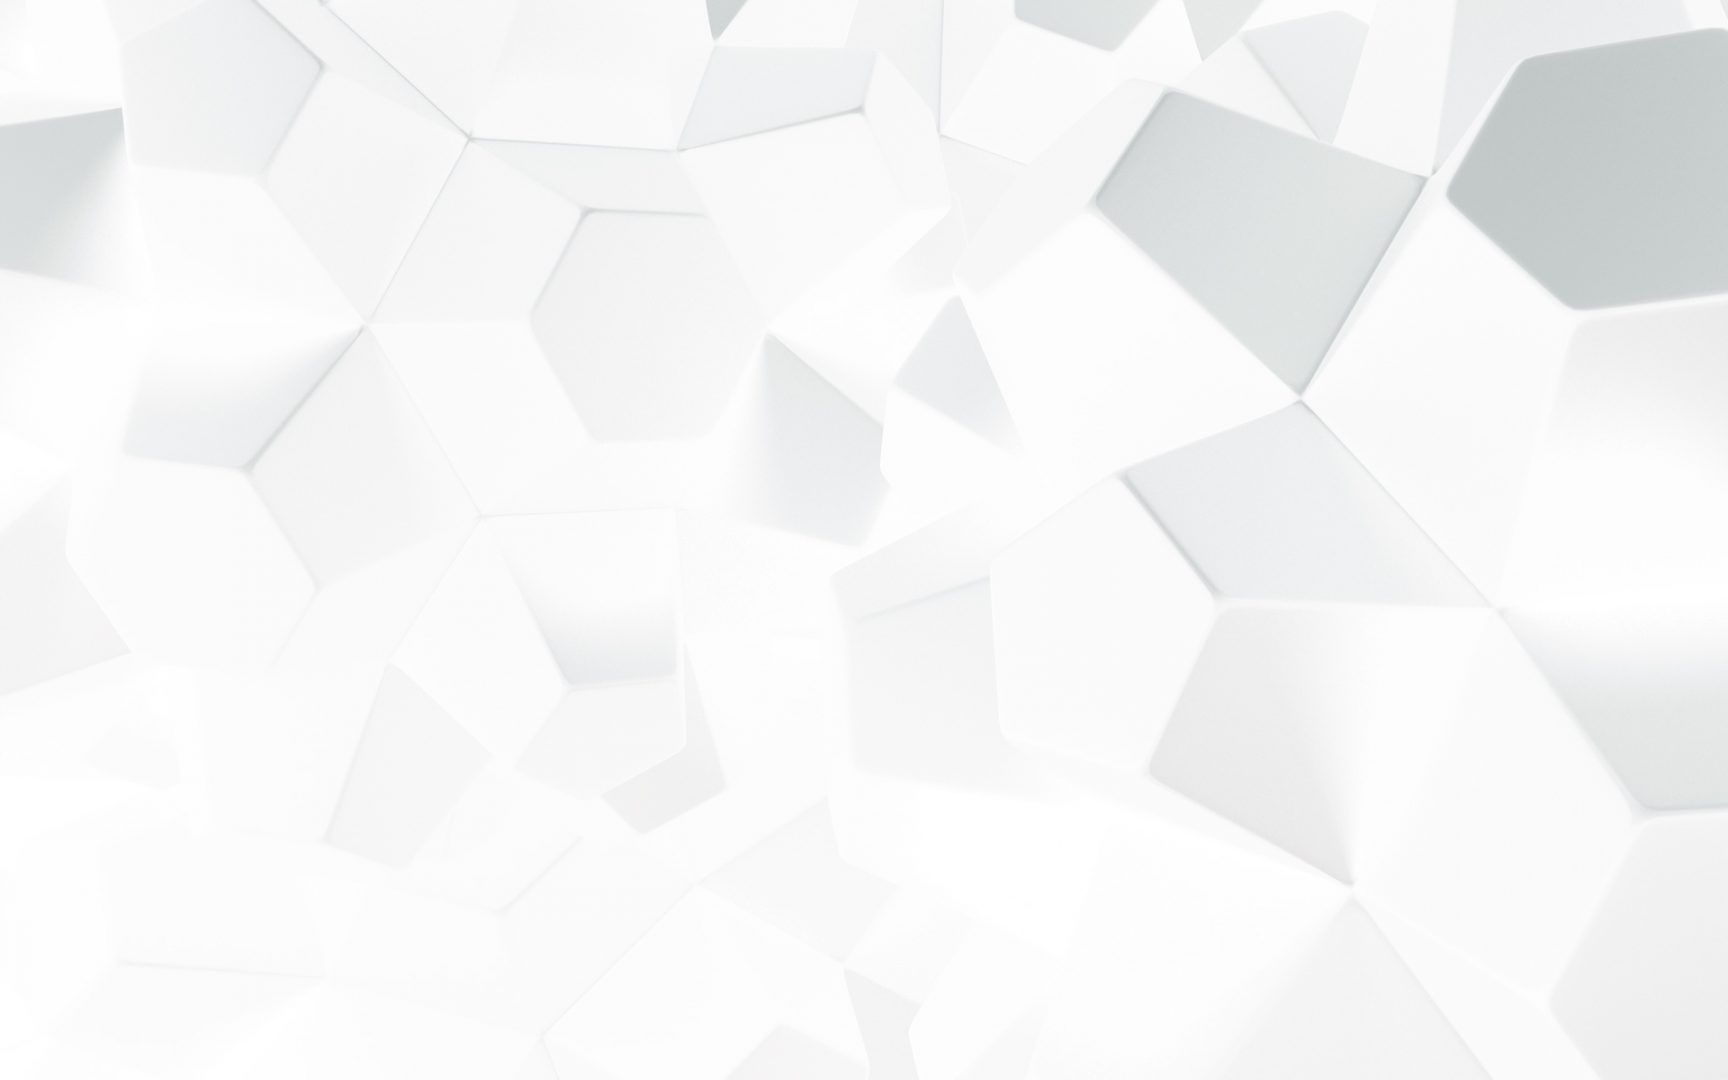 White Pictures On Wallpaper 1080p Hd White Background Hd Background Hd Wallpaper All White Background